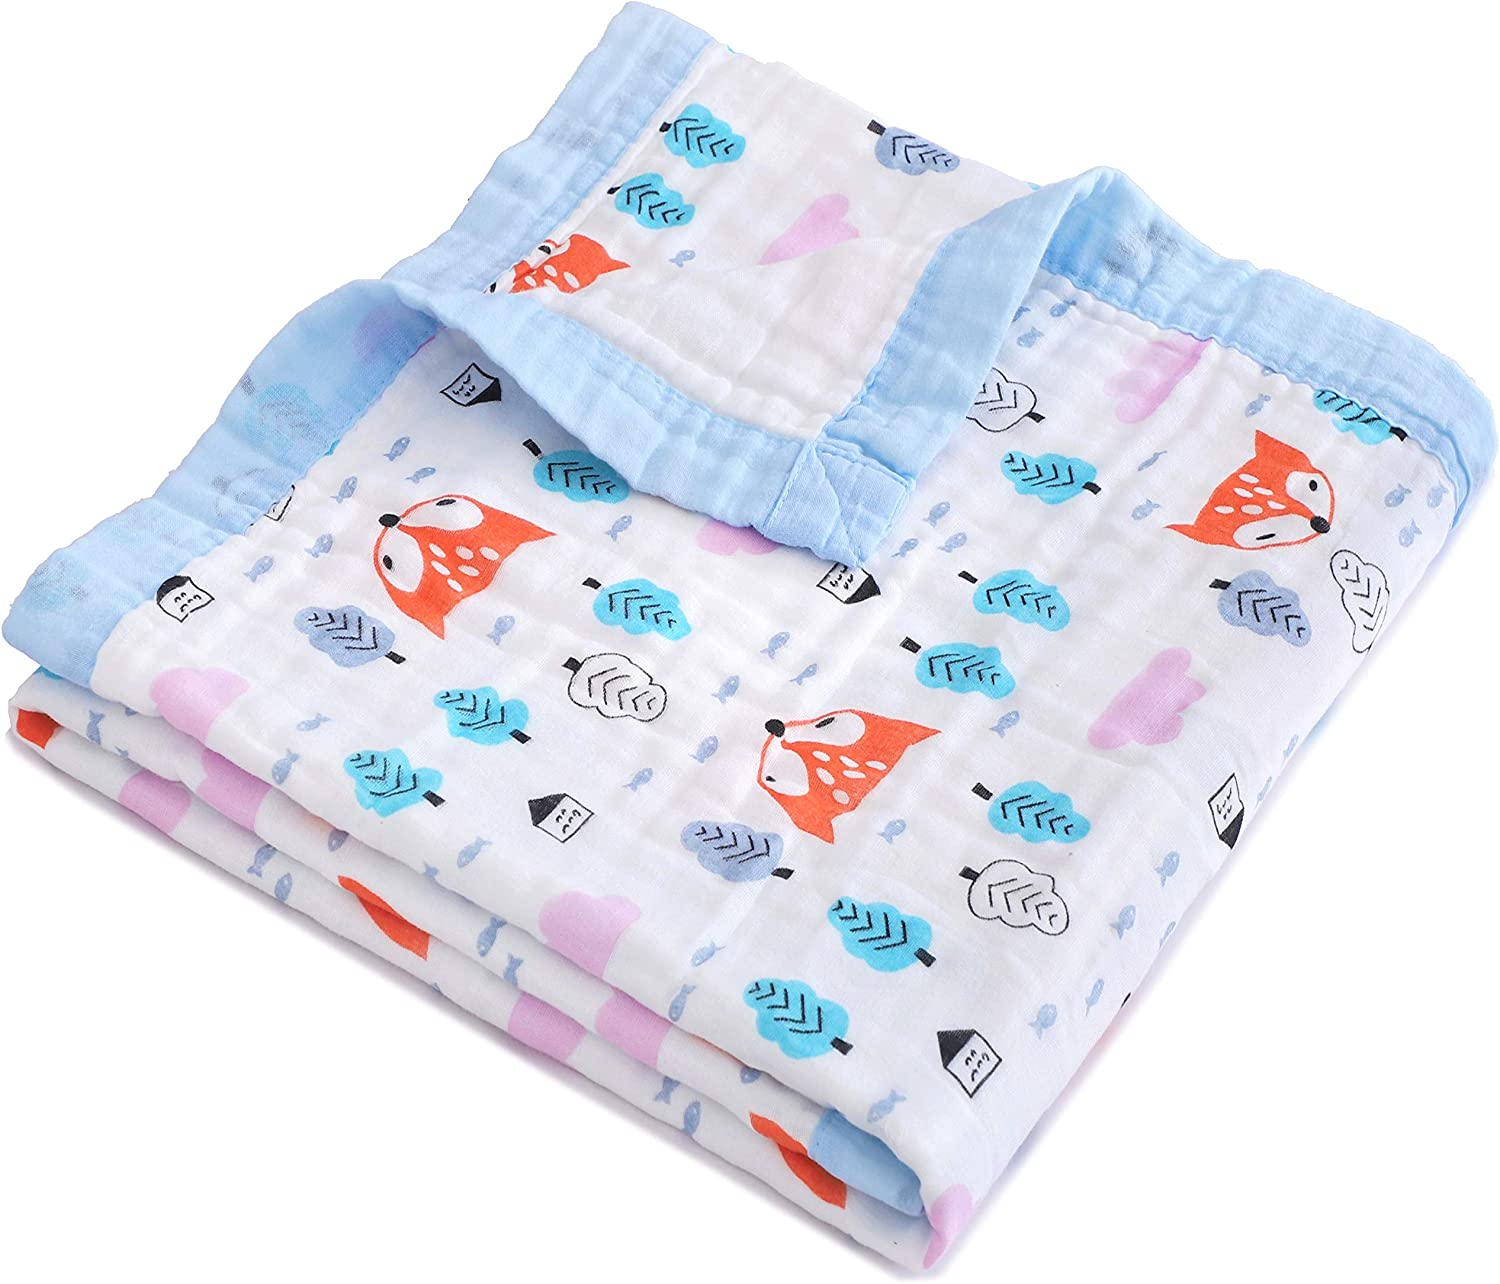 Jay & Ava Baby Muslin Blanket, Organic Cotton, 4 Layers, Soft, Hypoallergenic, Breathable Quilt, Nursery & Crib Blanket, Stroller Blanket for Toddler, Perfect (Orange Fox)